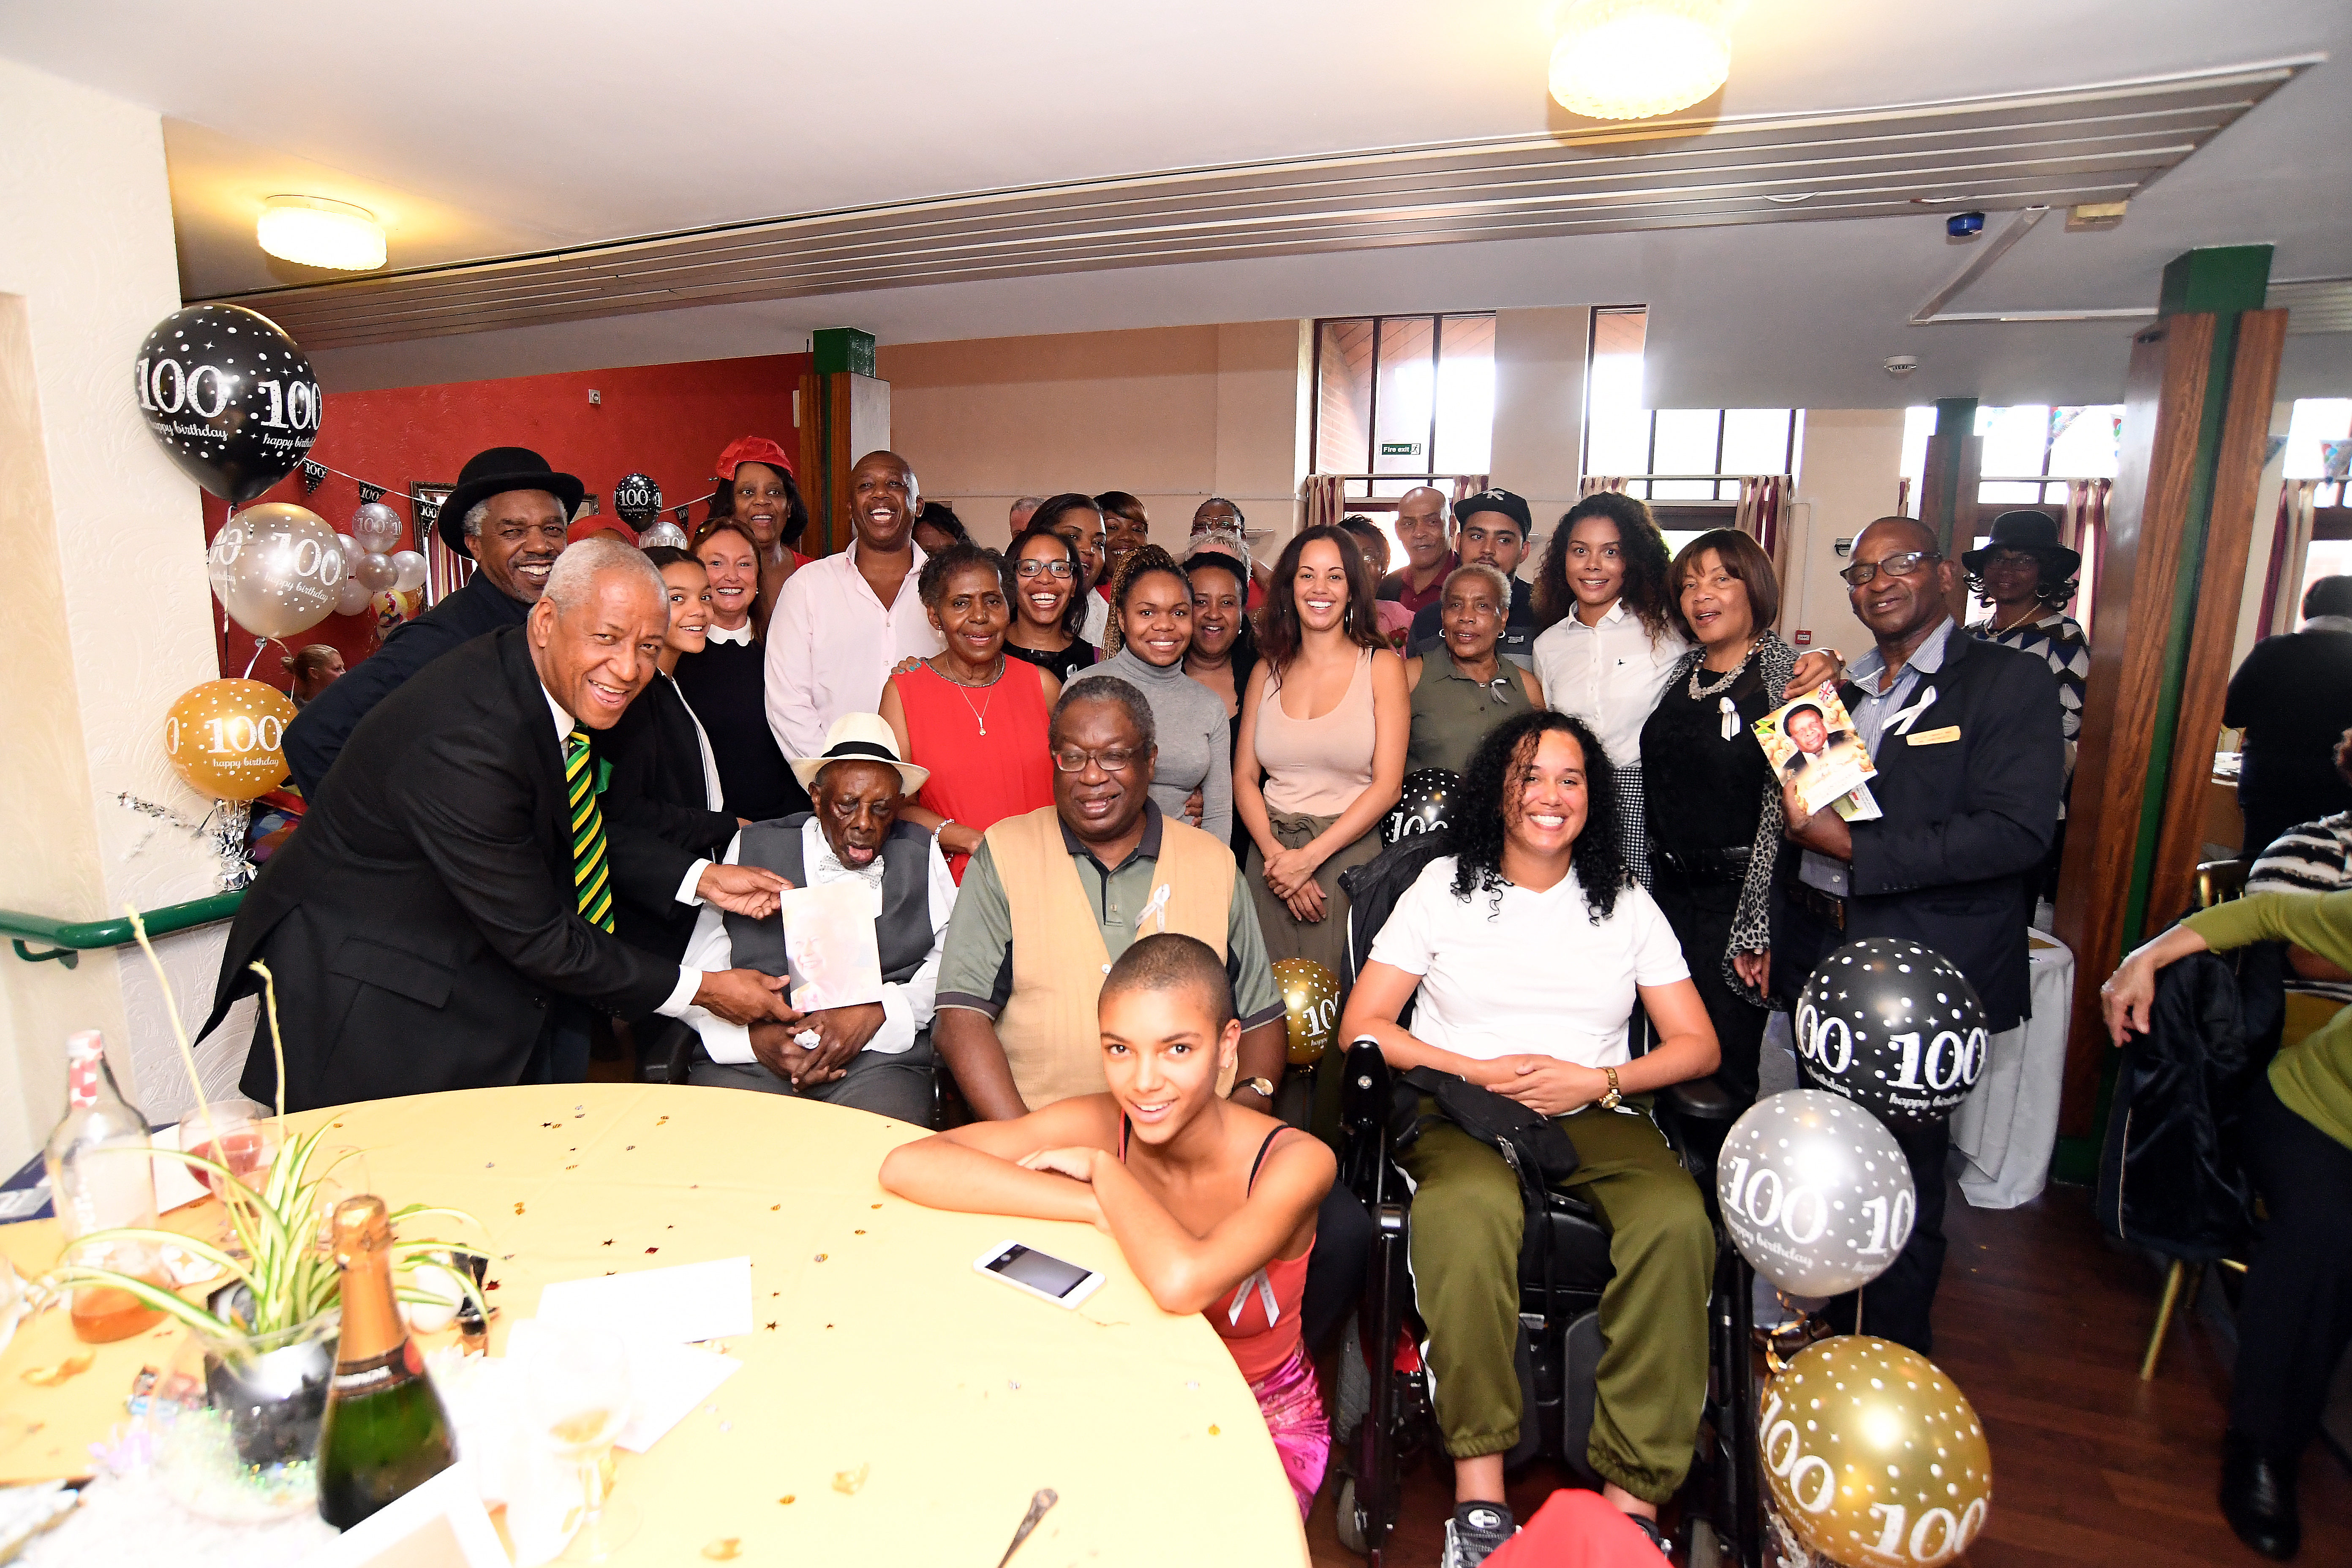 Celebrations for Rudolph Smith's 100th birthday were held at Mary St with family and friends.